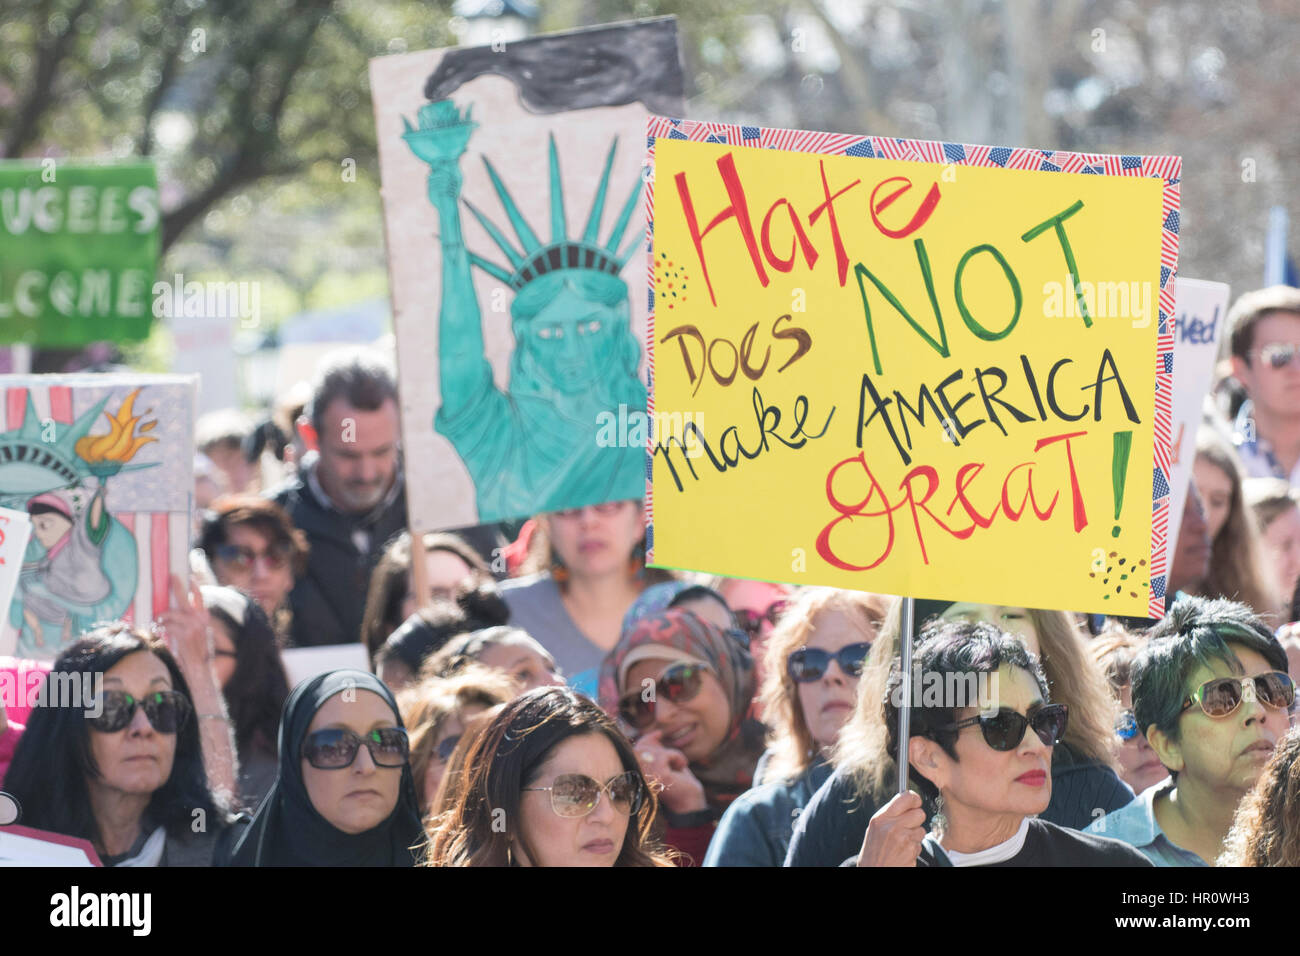 Austin, Texas, USA. 25th February 2017. More than a thousand protesters converge at the Texas Capitol for a Saturday - Stock Image